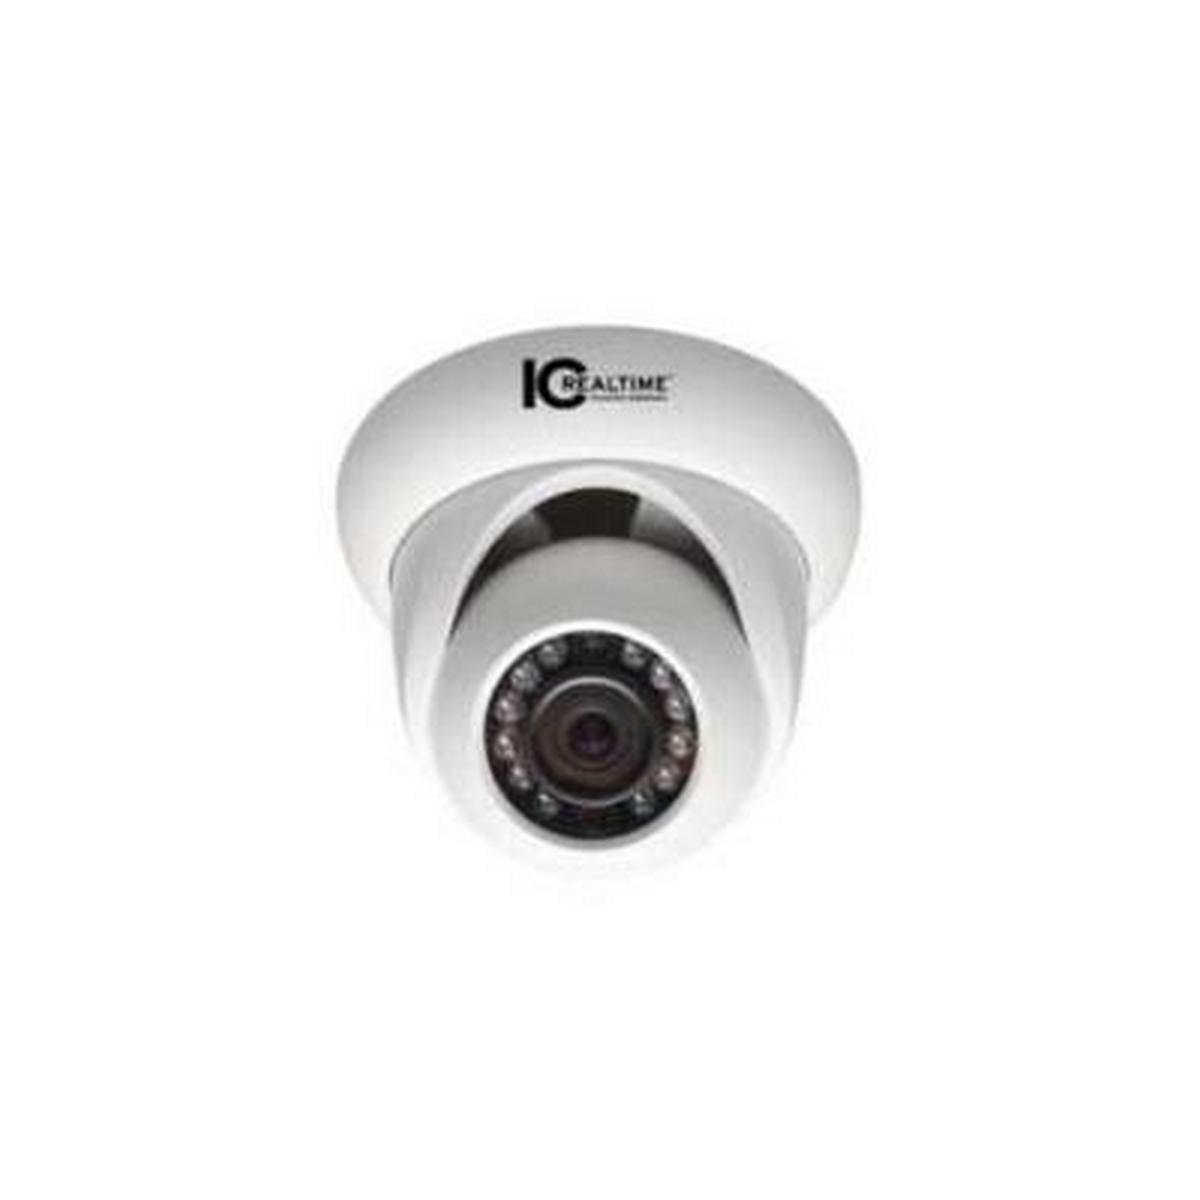 INDOOR/OUTDOOR MEGAPIXEL IP 50' IR DOME, 1.3 MEGAPIXEL, 720P AT 30 FPS, UP TO 1.3MP WITH H.264E COMPRESSION, 3.6MM LENS, 12VDC OR POE 802.3AF - NO POWER SUPPLY INCLUDED